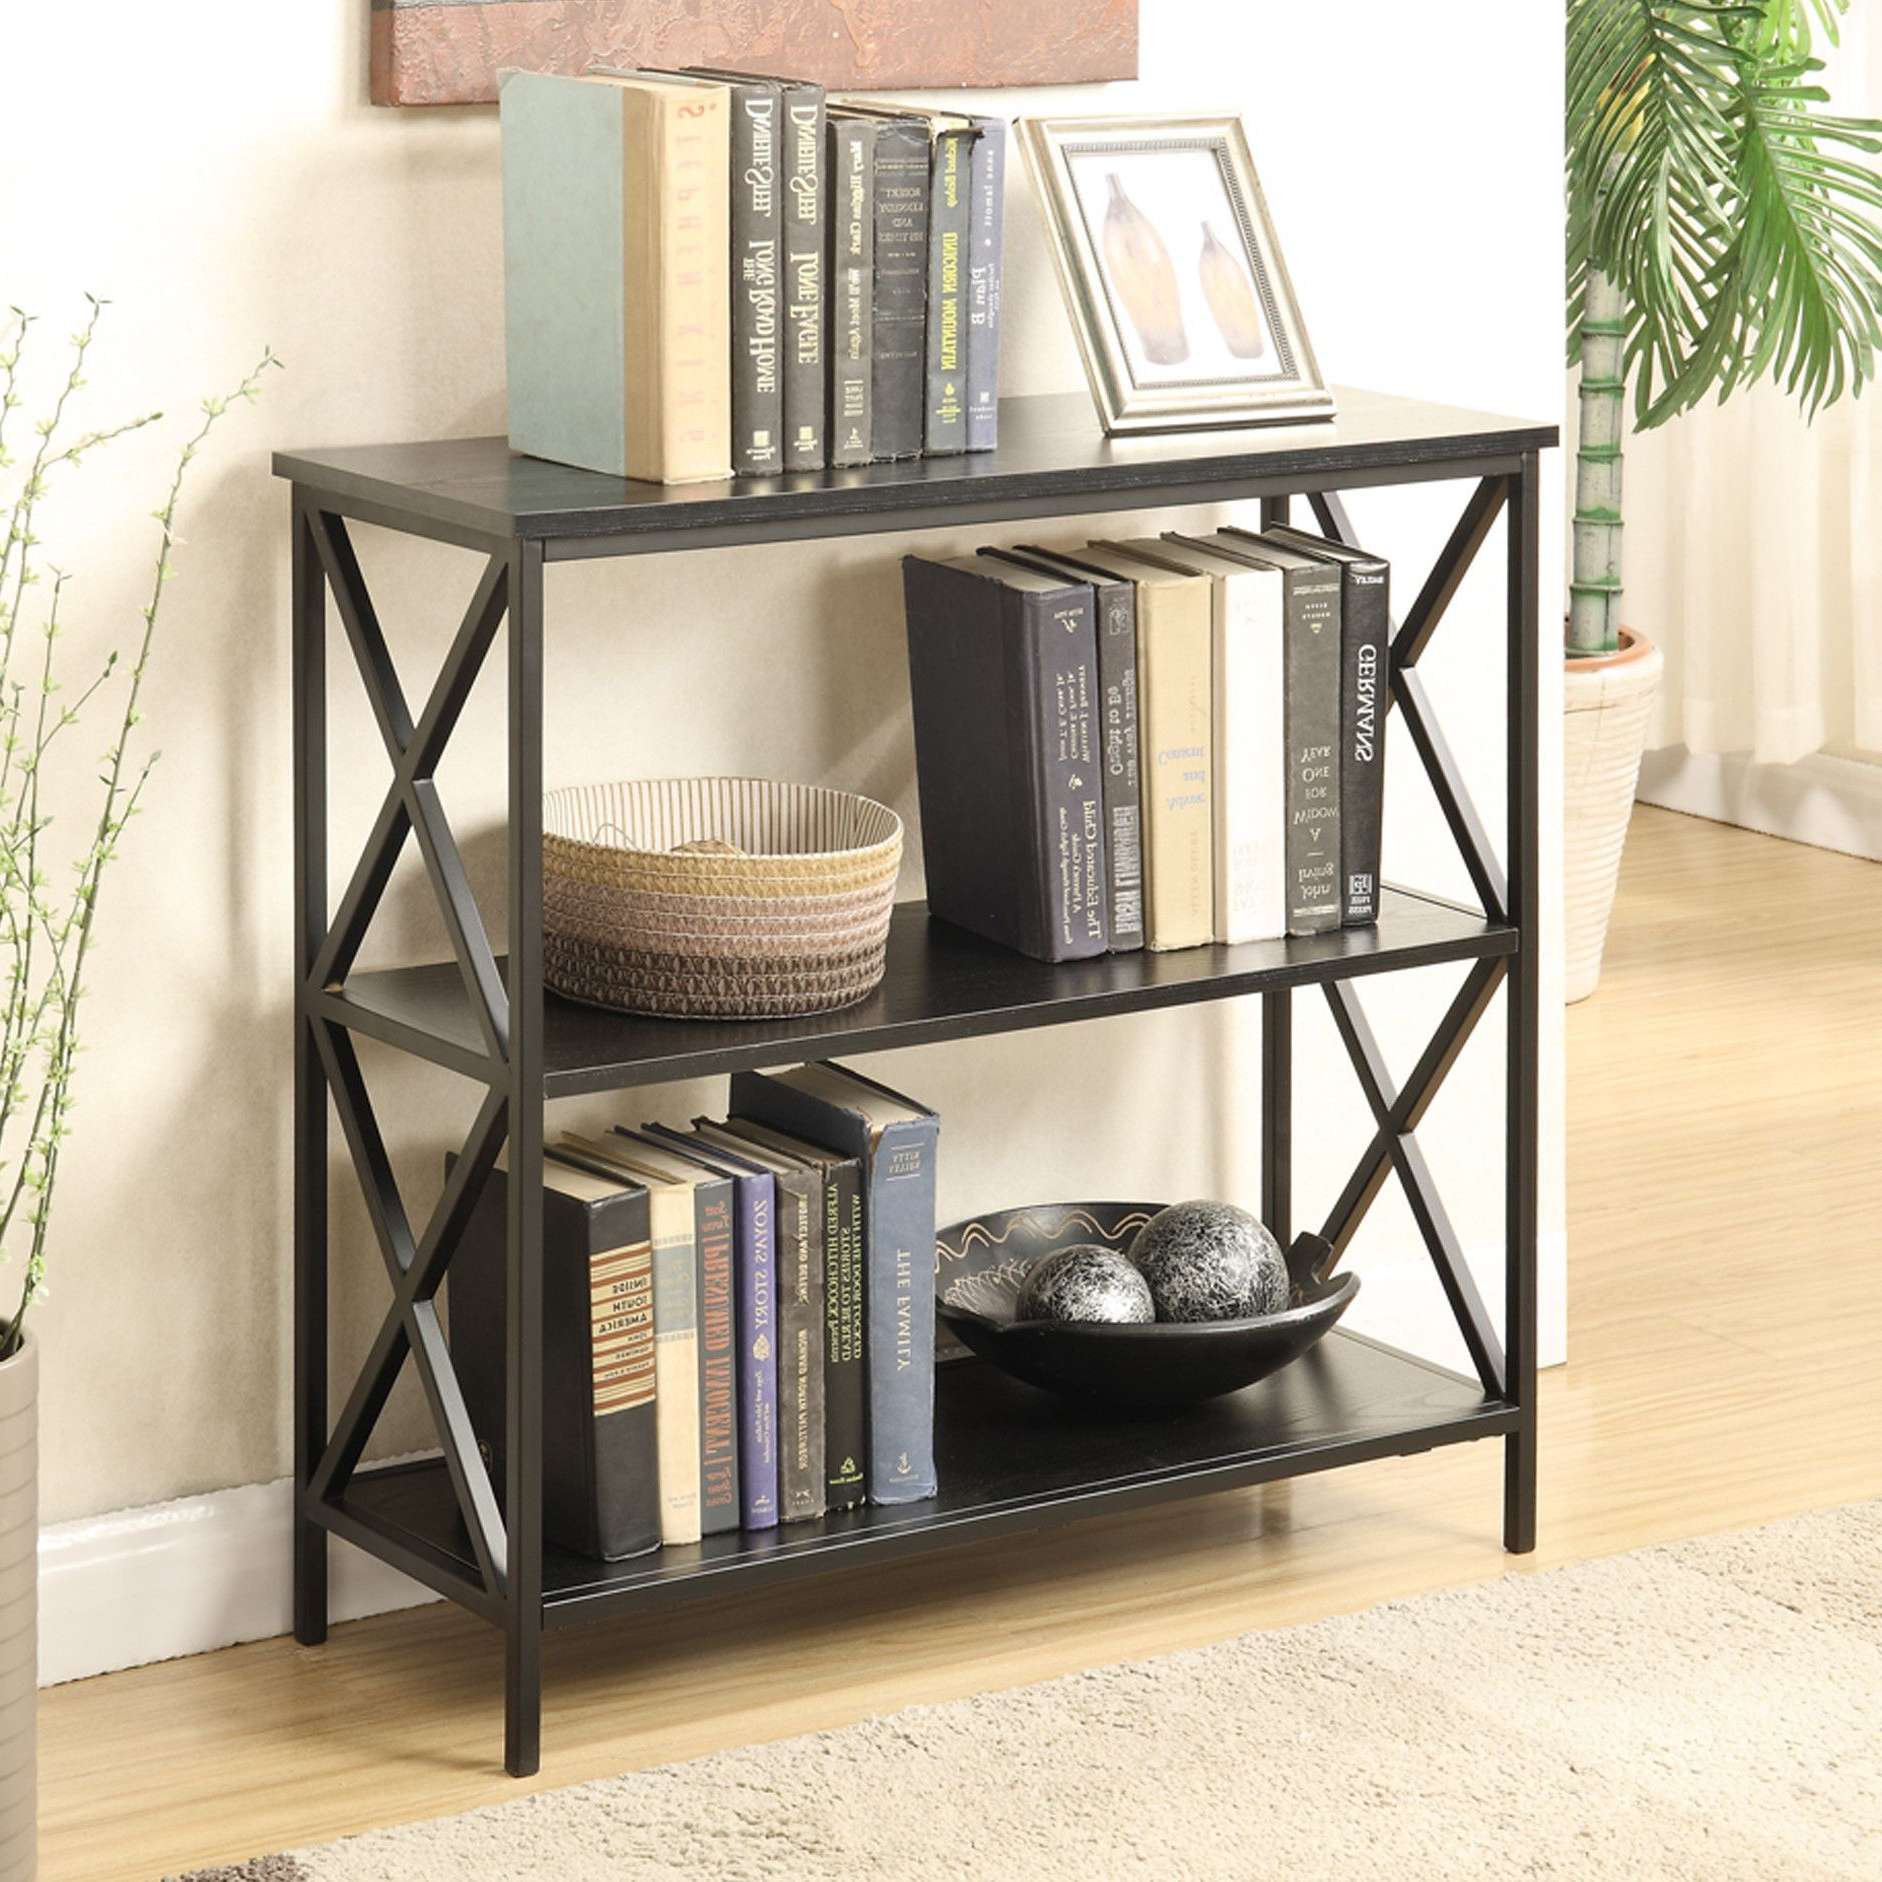 Etagere Bookcase With Abbottsmoor Etagere Bookcases (Gallery 6 of 20)